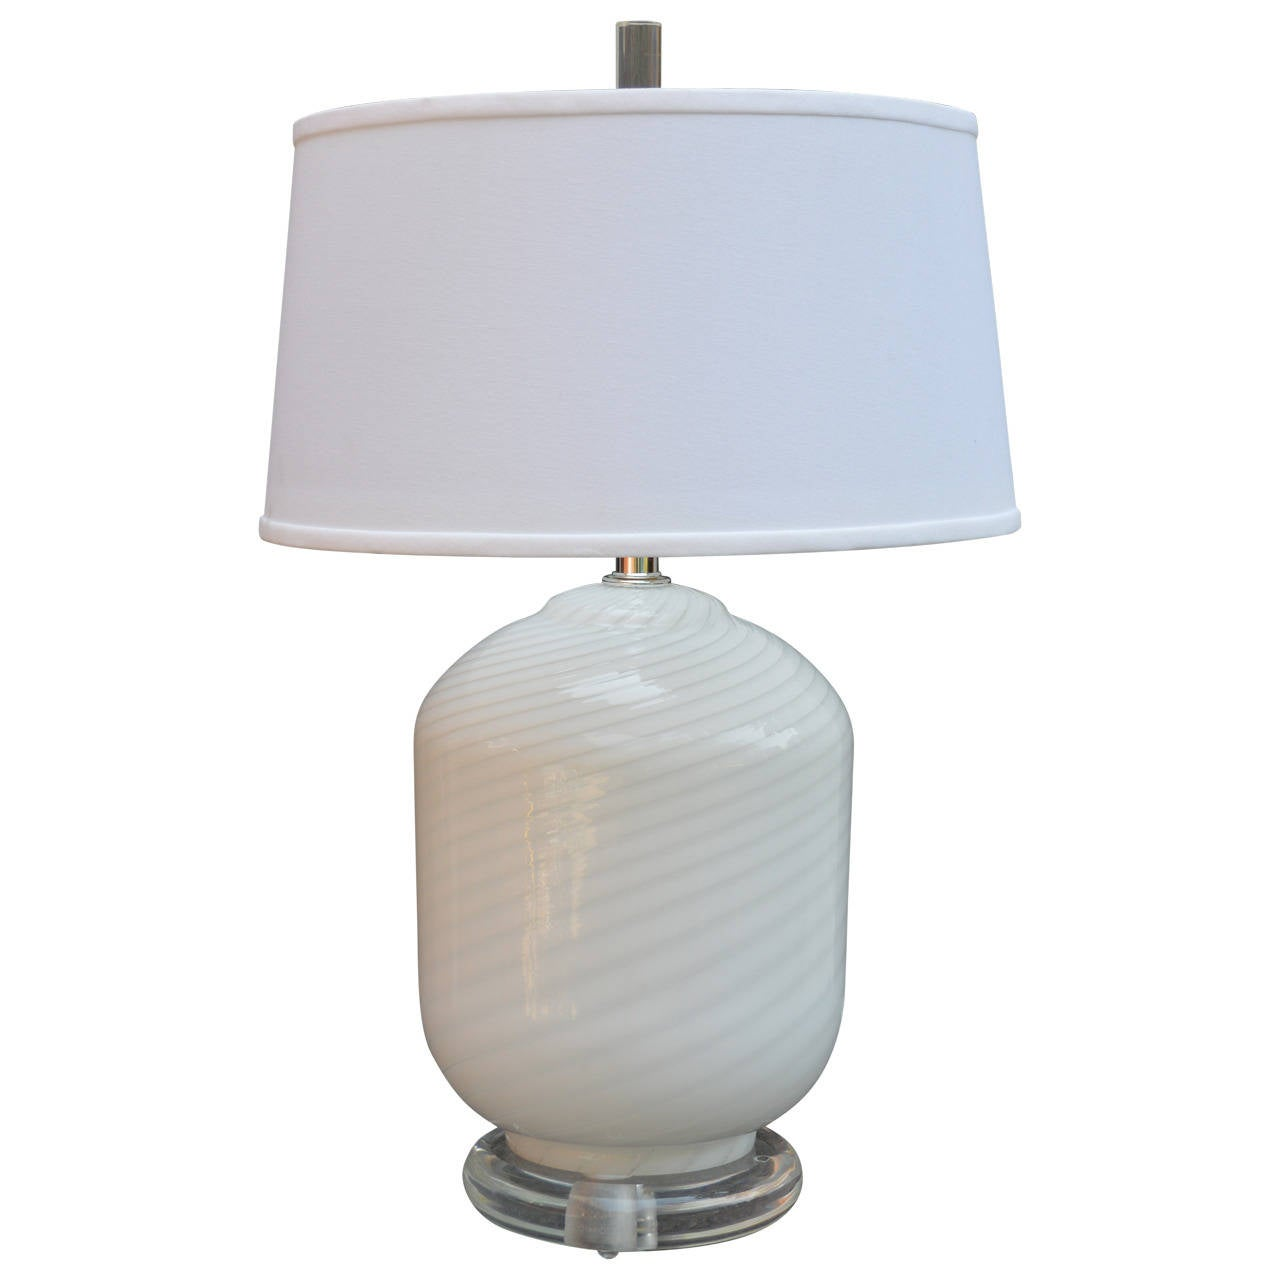 murano vetri glass and lucite table lamp for sale at 1stdibs. Black Bedroom Furniture Sets. Home Design Ideas